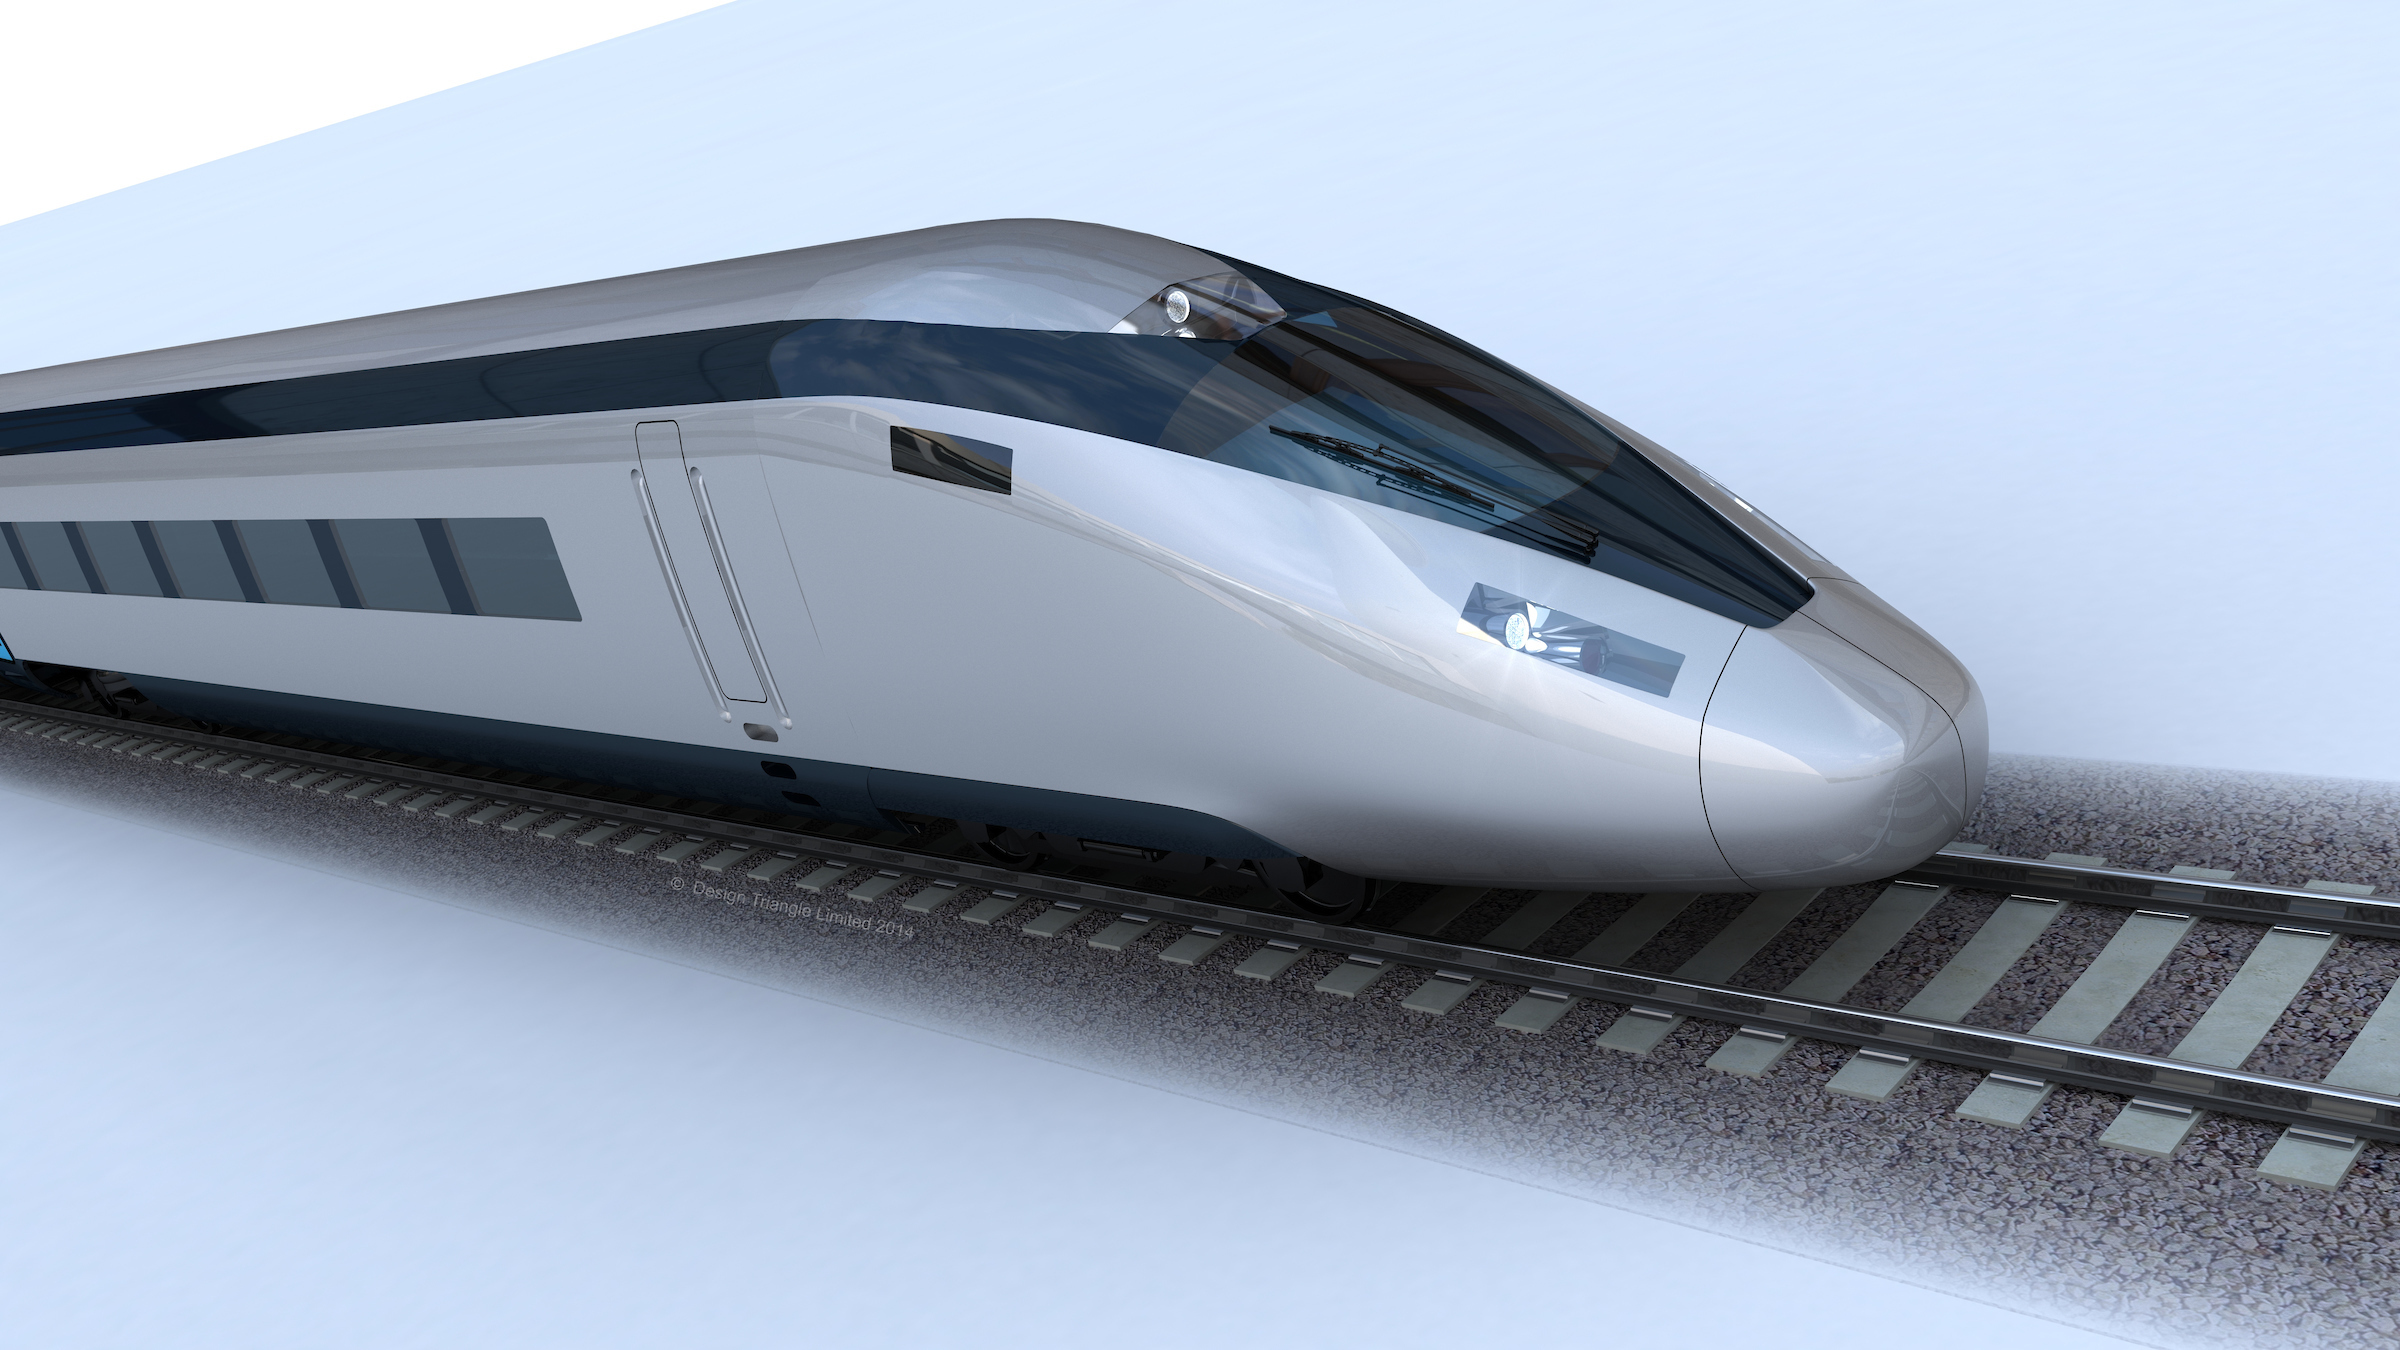 Cheshire Greens urge transport bosses to look beyond HS2